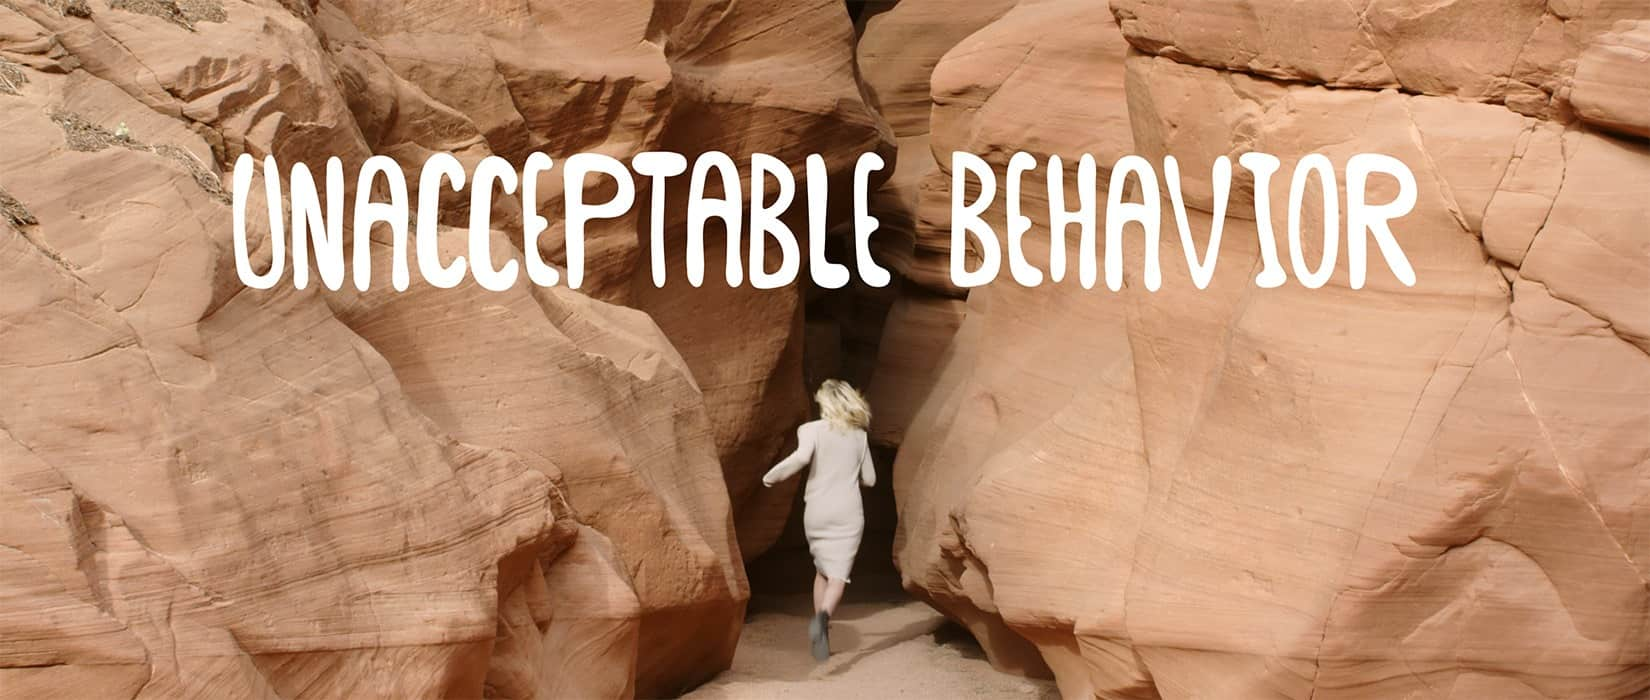 Unacceptable Behaviour delves into the balance between childhood and adulthood, the broken promises of youth as well as the loss of innocence and freedom brought on by age and responsibility.